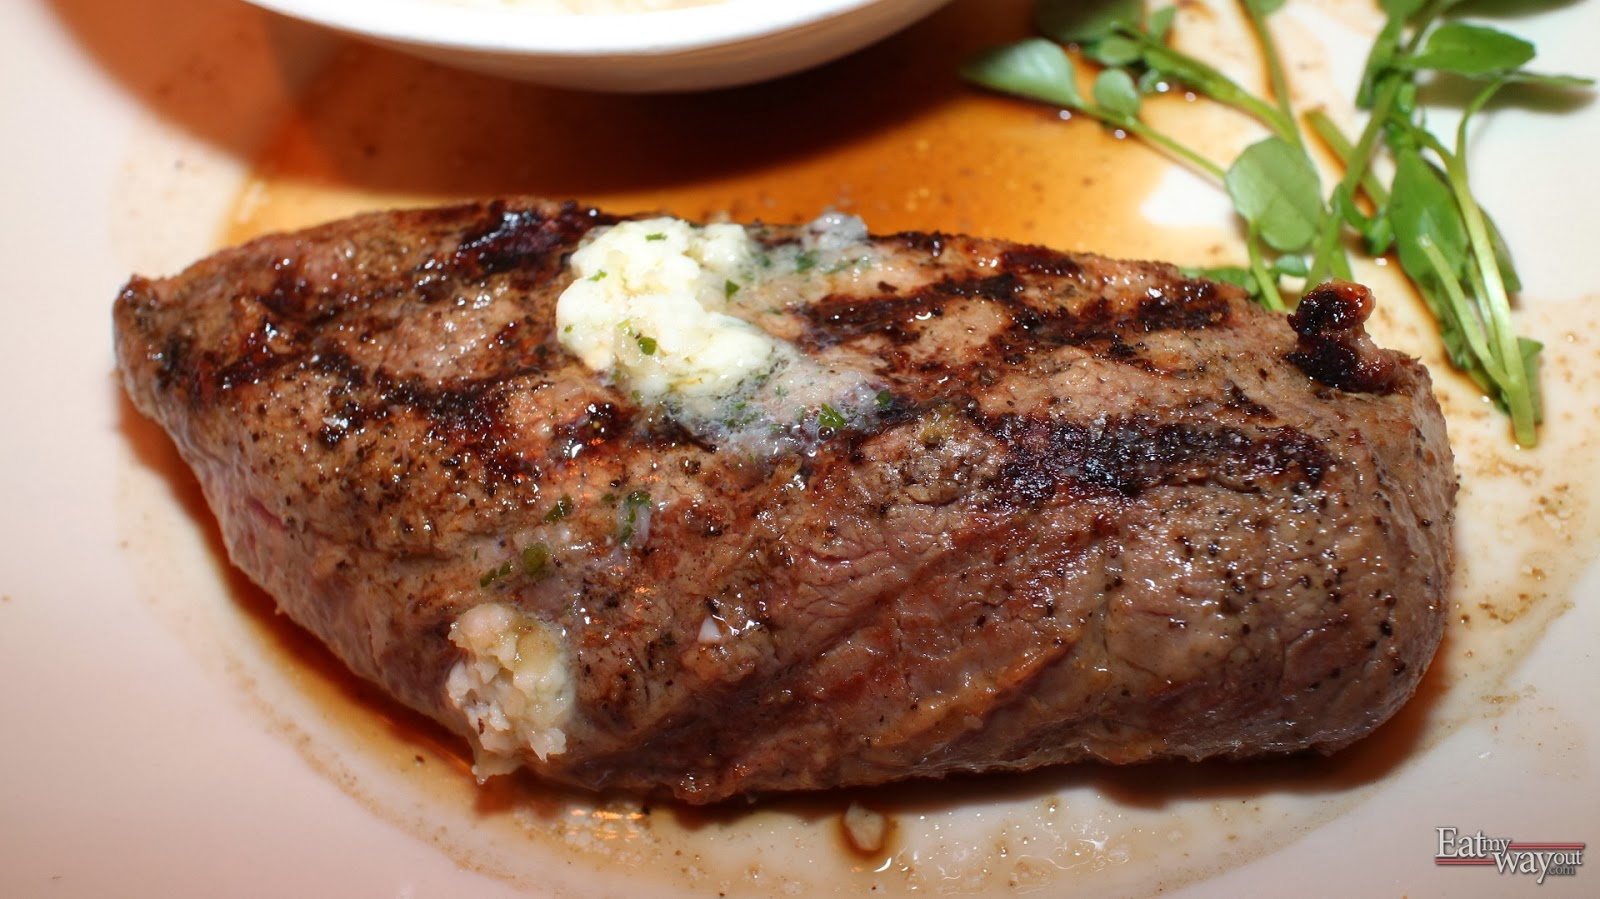 Grilled Ribeye Steak Cheesecake Factory Steak cheesecake factory.